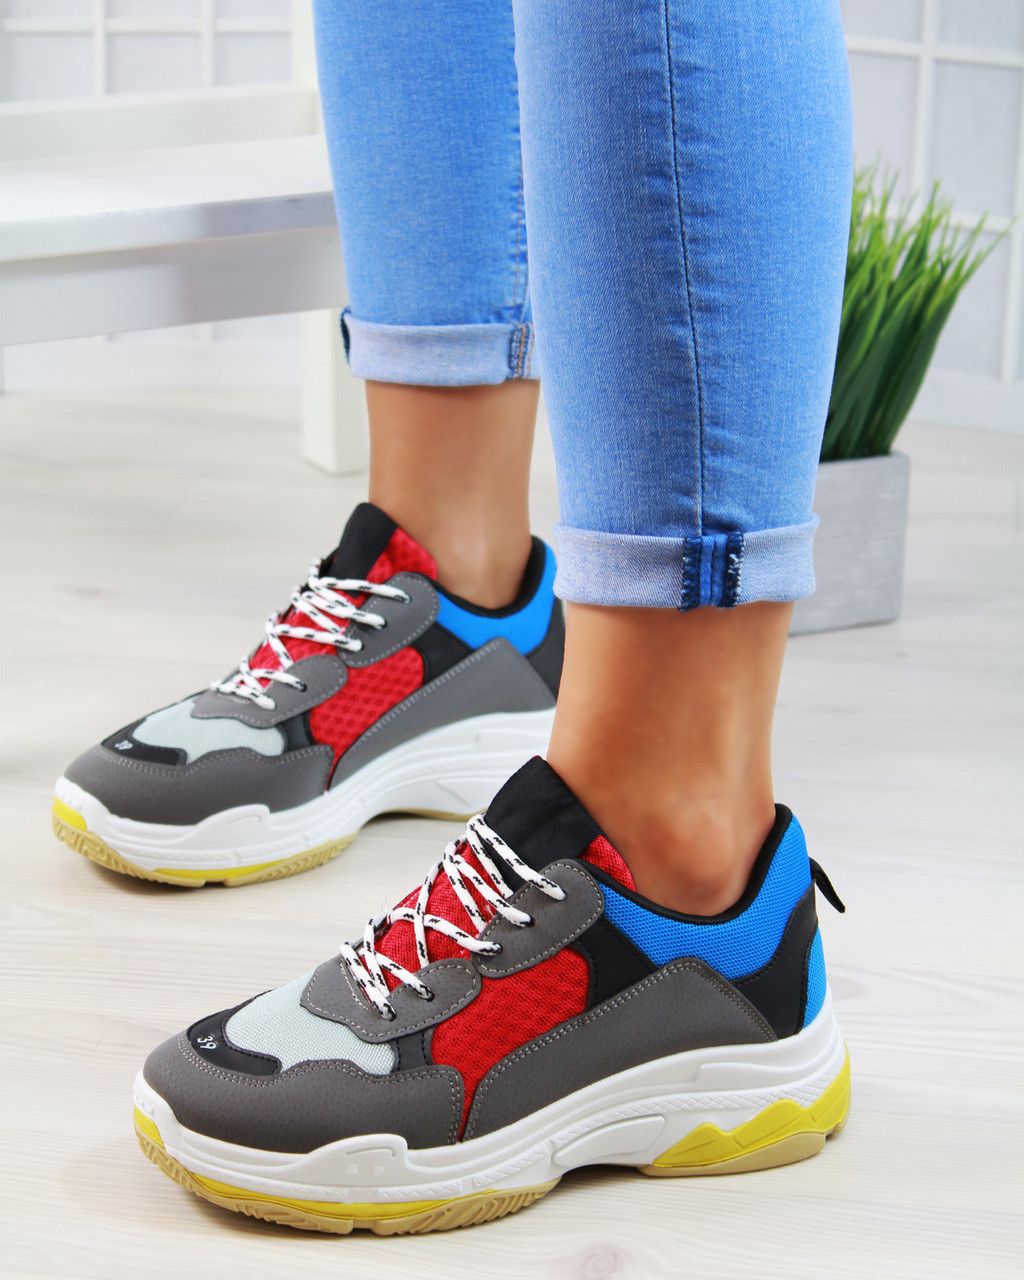 b57010438a4ba1 ... Madison Blue Chunky Lace Up Trainers. Loading zoom